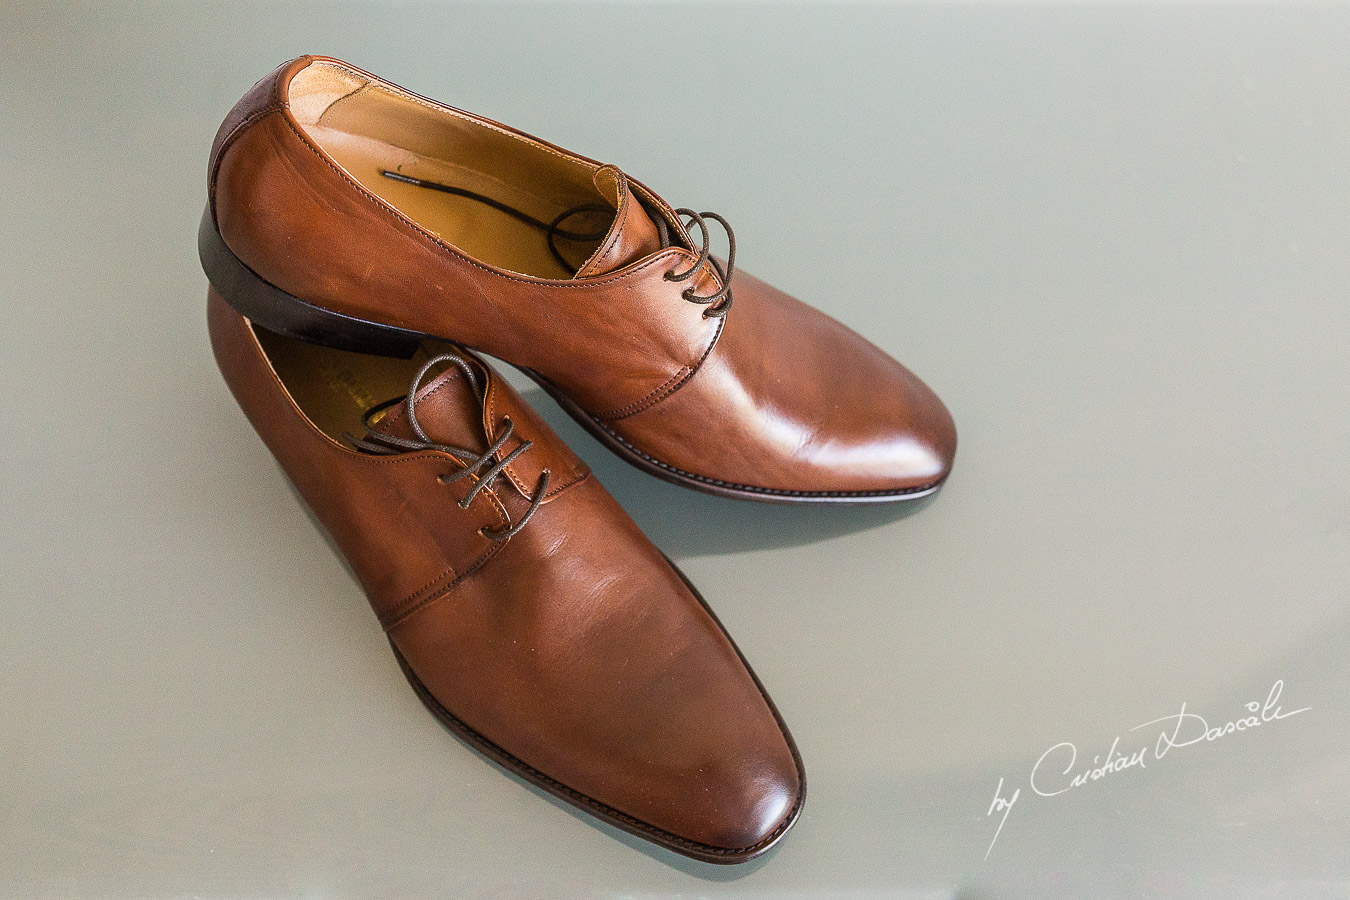 Groom's shoes captured at an elegant and romantic wedding at Elias Beach Hotel by Cristian Dascalu.